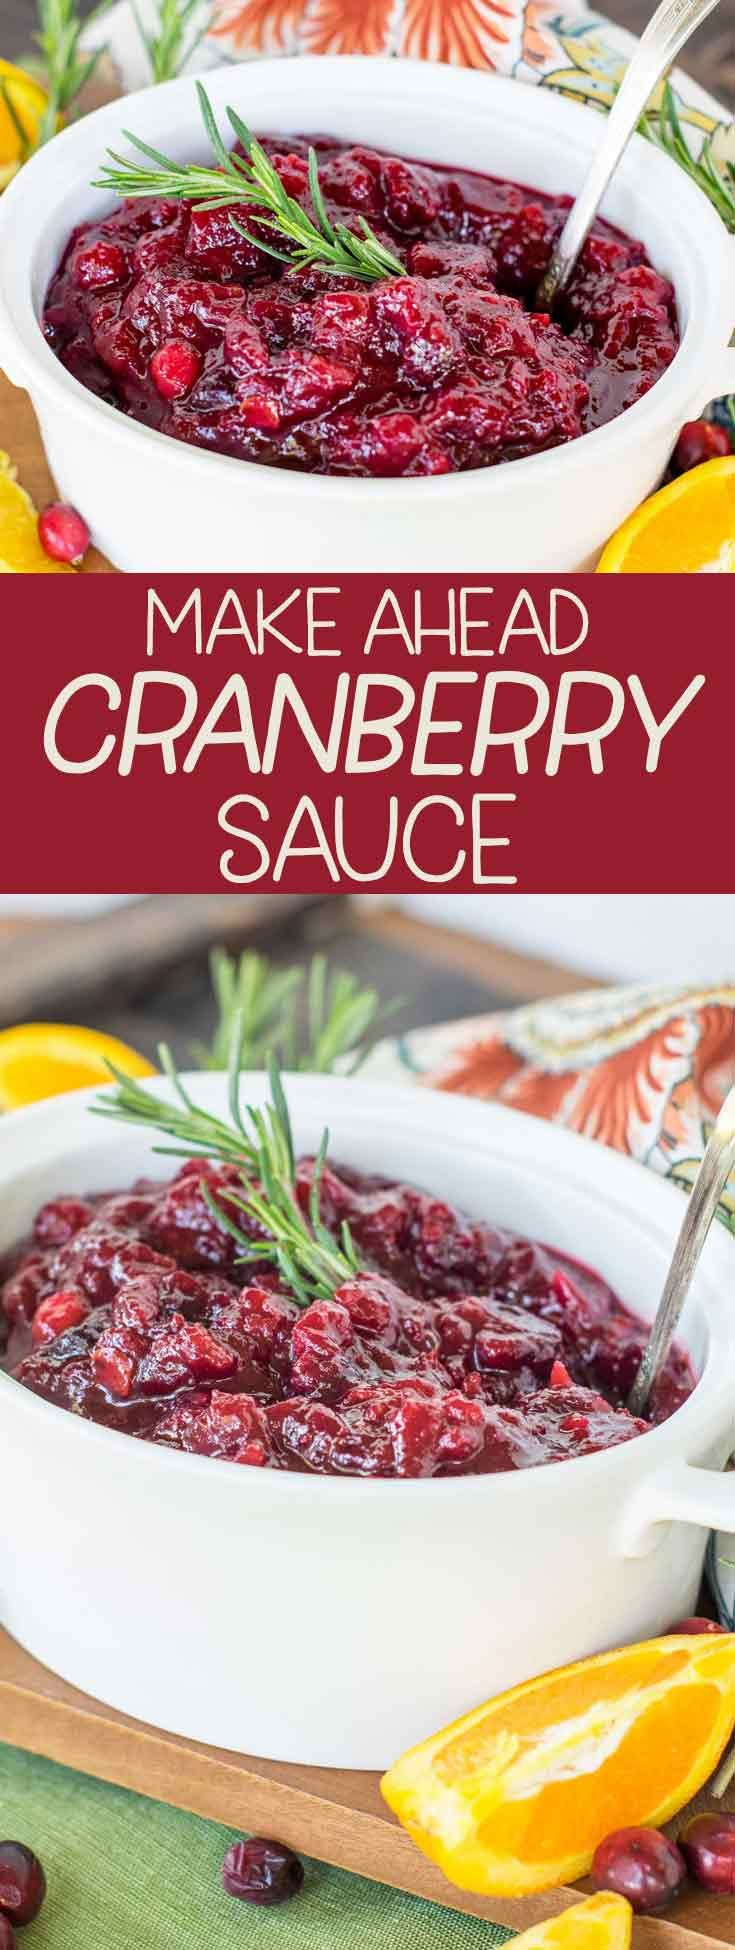 The Best Cranberry Sauce Ever! Quick, Easy and Make Ahead! - Major Hoff Takes A Wife : Family Recipes & Travel Inspiration #cranberrysauce